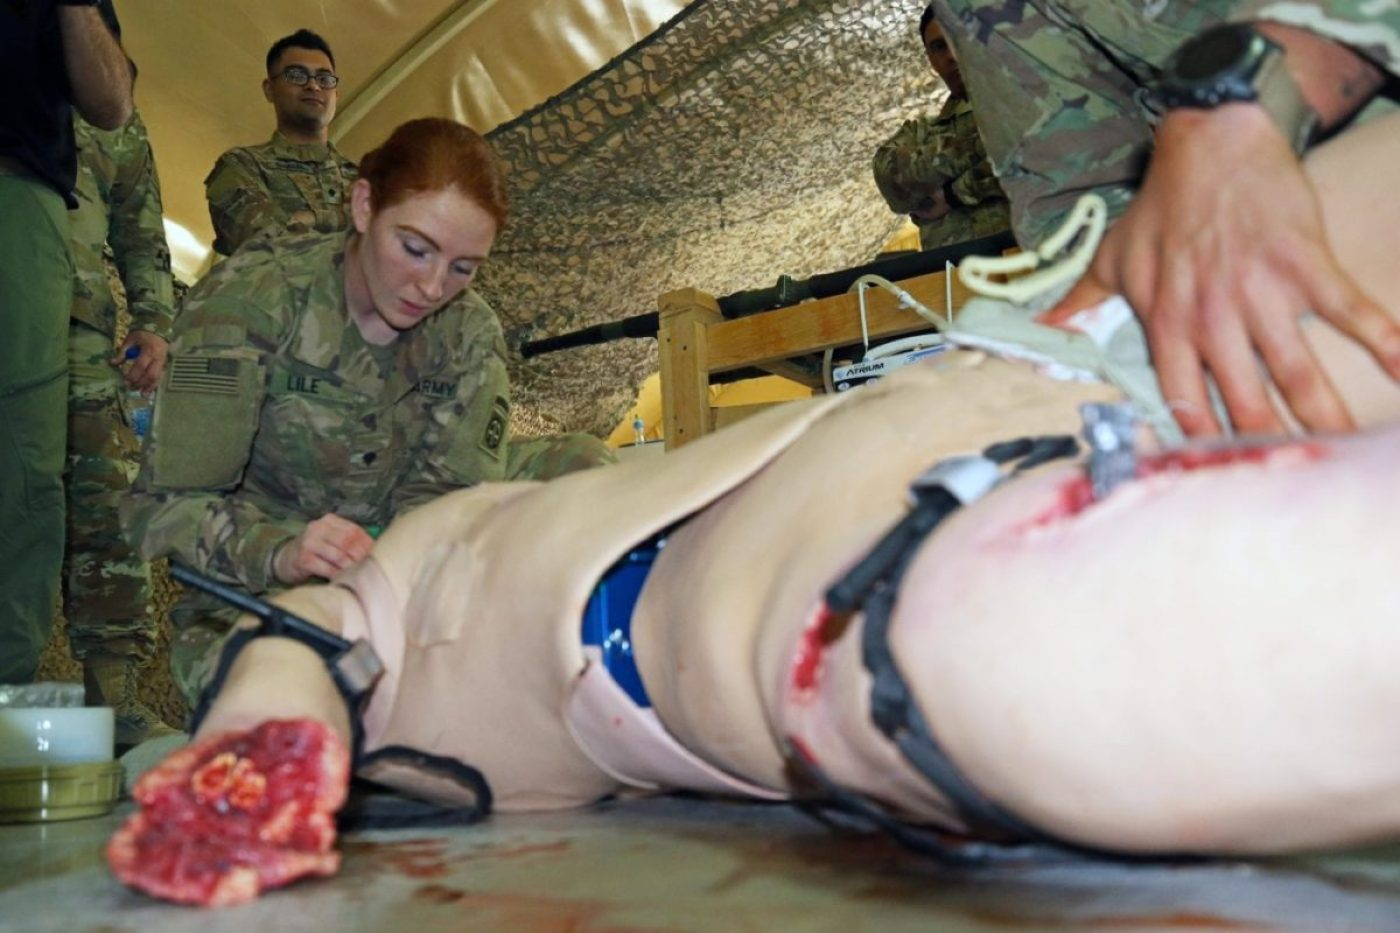 Simluated Combat Care Military